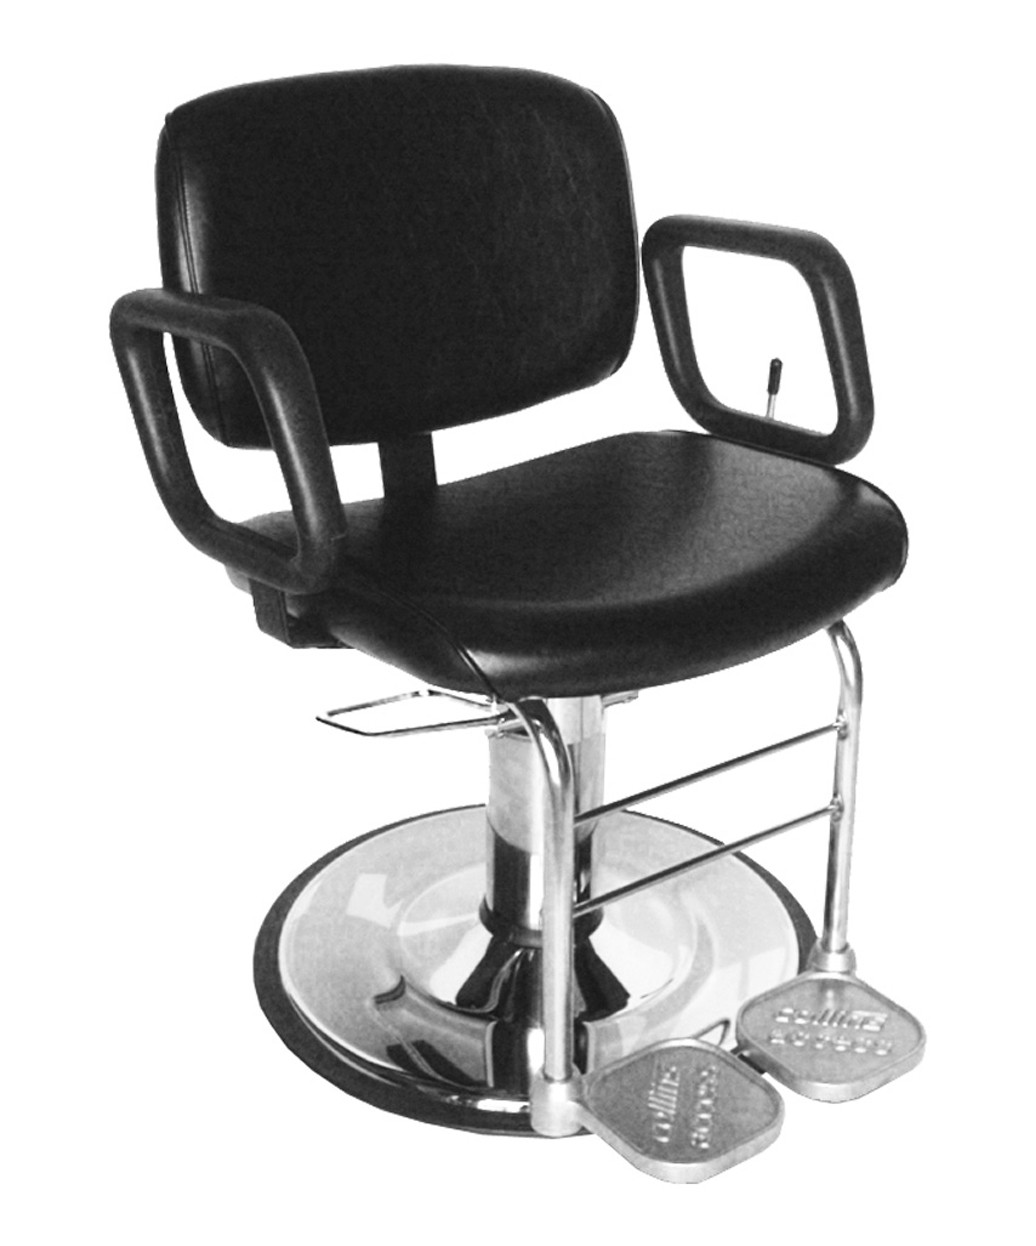 Collins 7710 all purpose salon chair for waxing threading for Wax chair salon